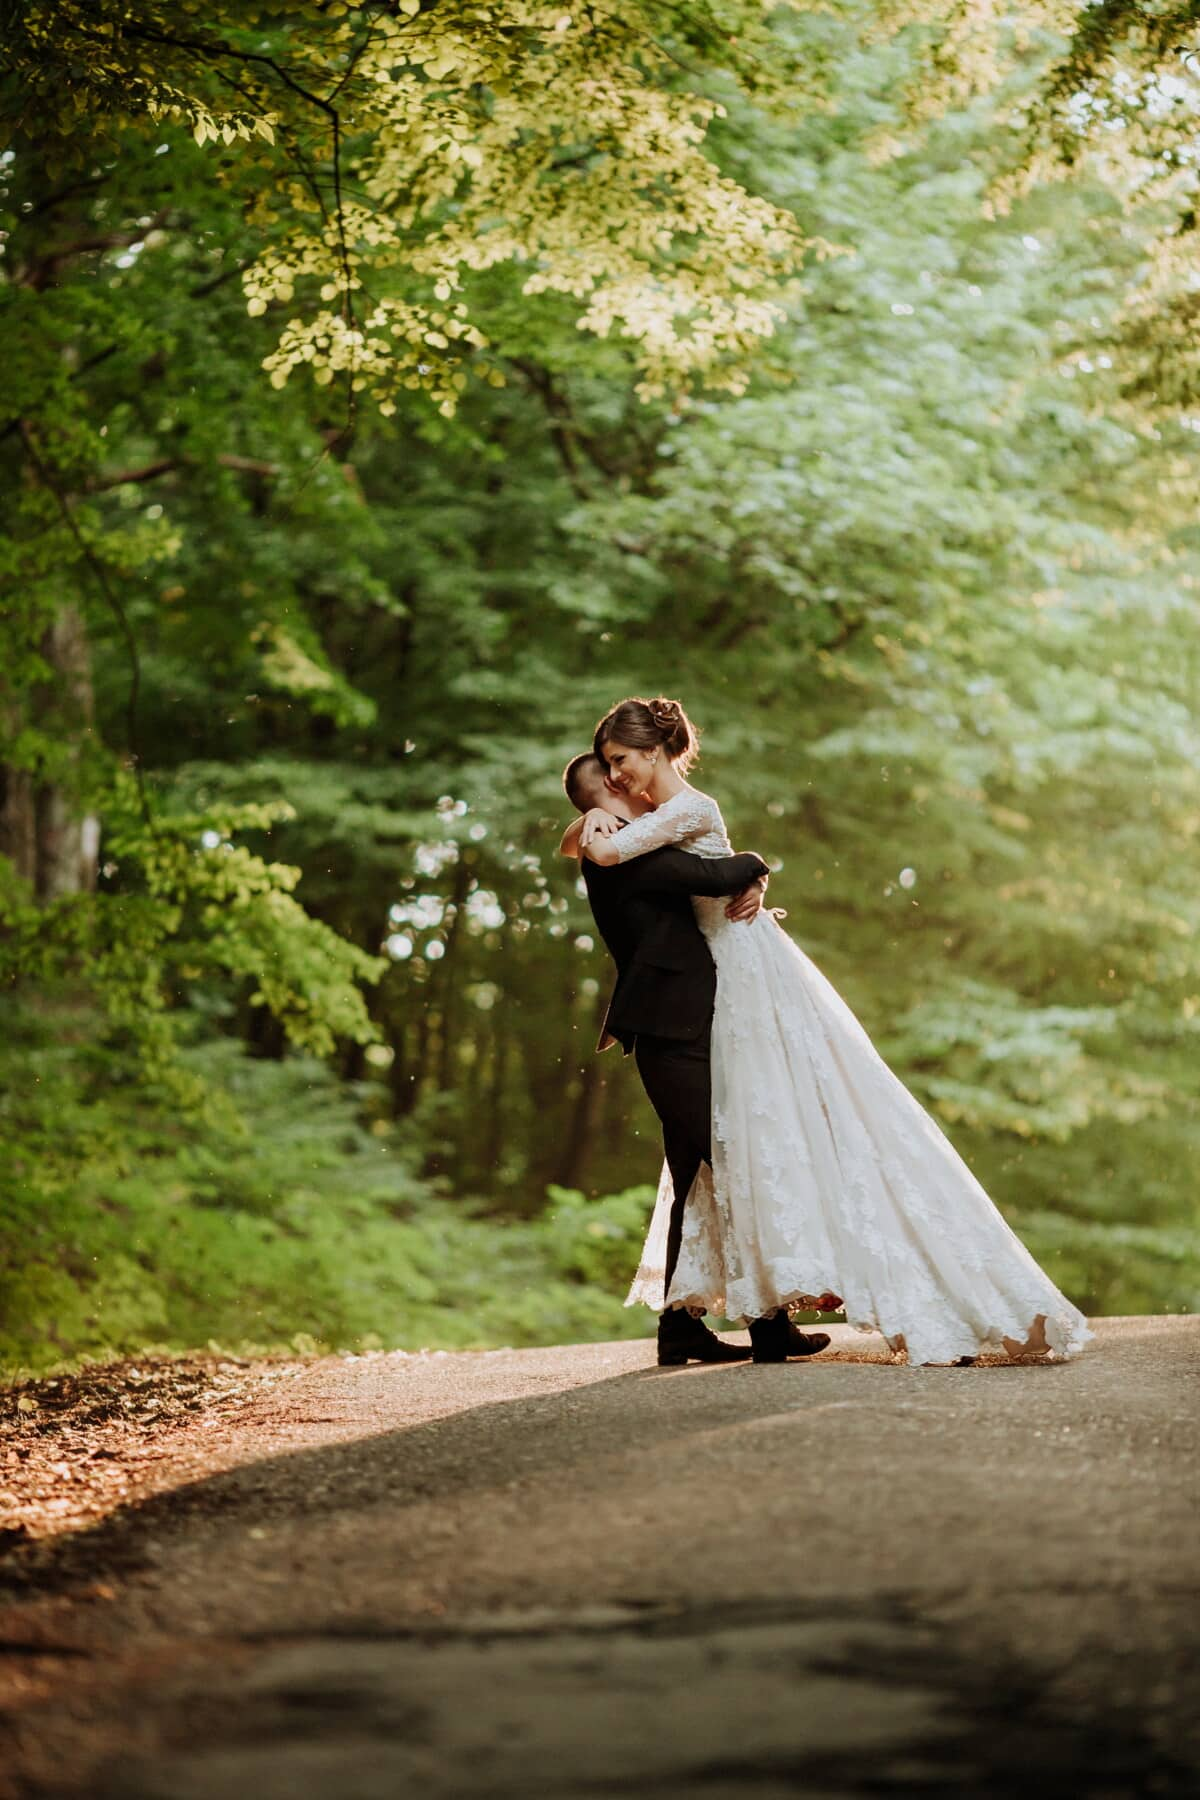 bride, forest road, groom, hugging, wedding, couple, dress, married, marriage, love